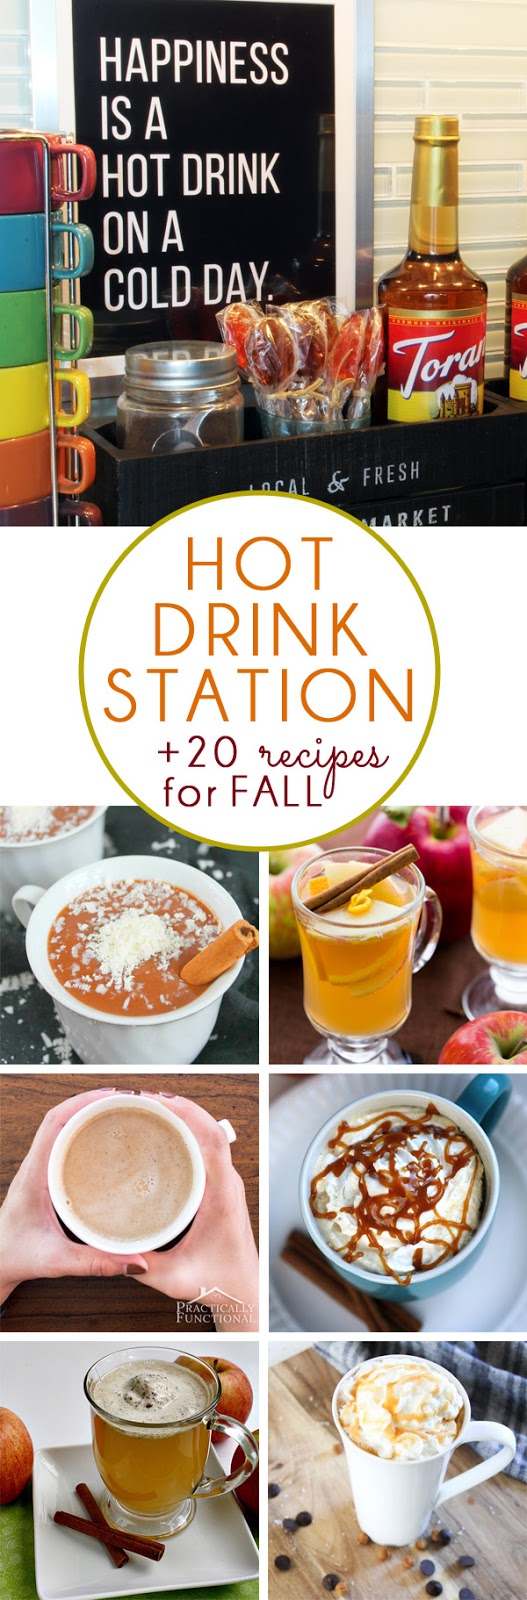 Hot Drink Station Fall Drink Recipes